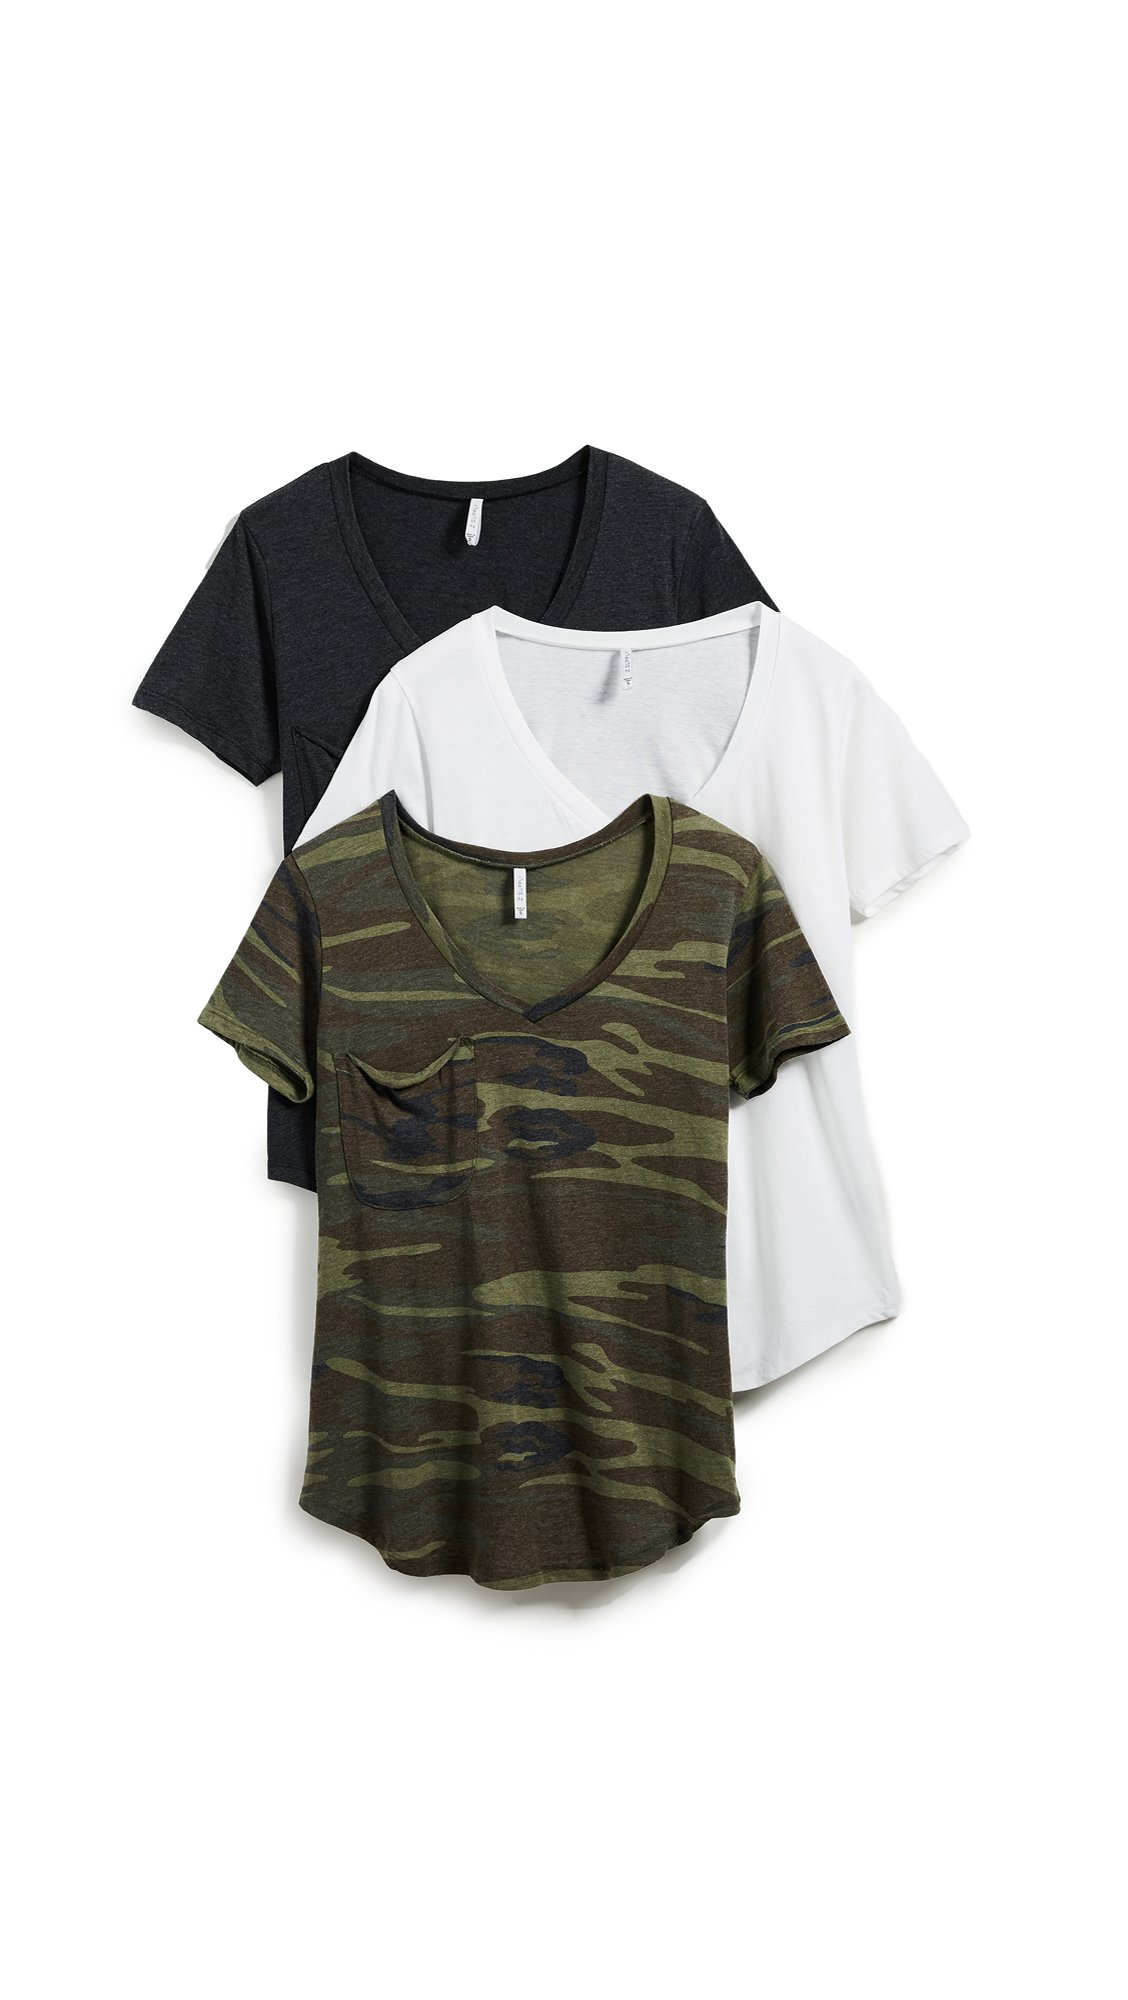 Z SUPPLY Women's Camo Tee 3 Pack, Multi, Small